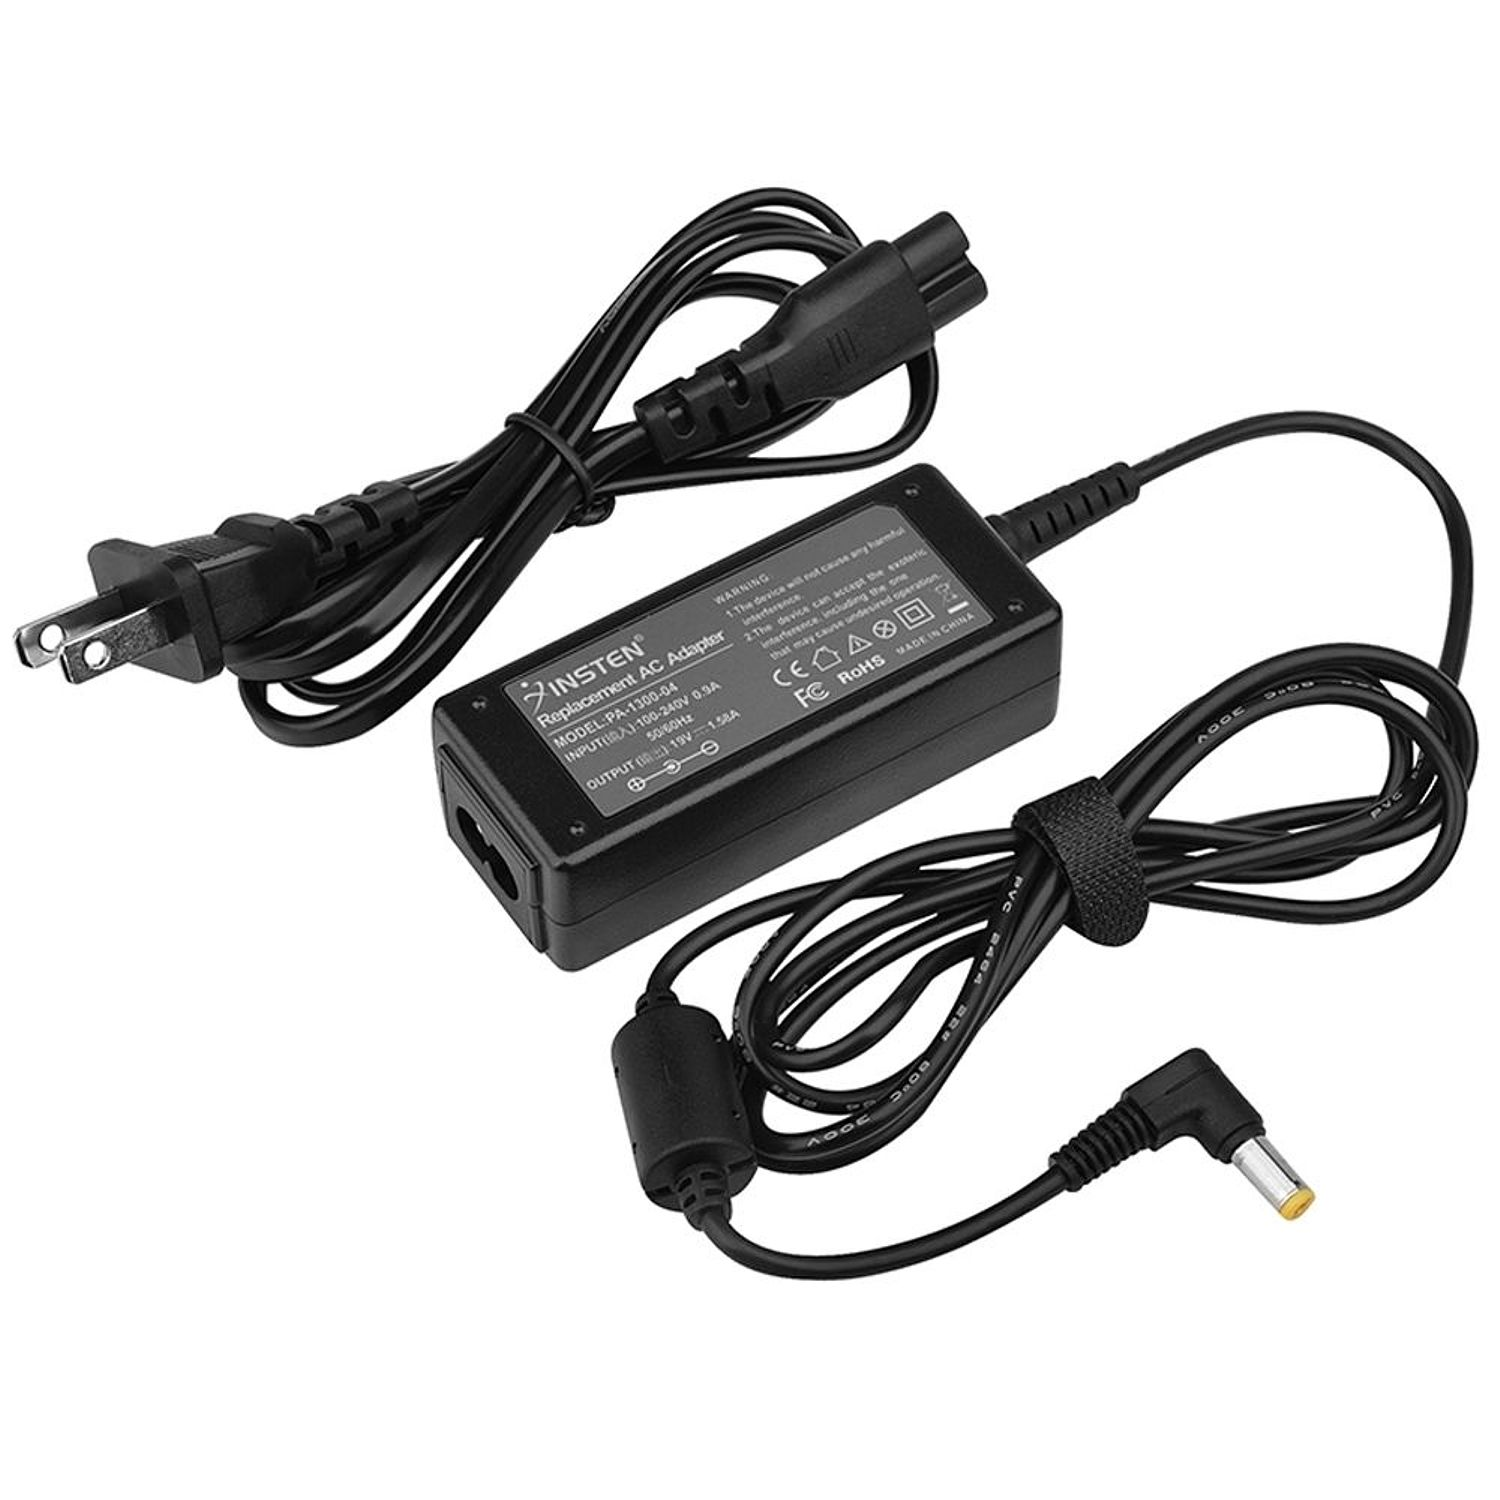 Insten AC Wall Power Adapter Charger For Acer Aspire One / Dell Mini 9 / Mini 10 / Mini 12 / Inspiron 910 / 1210